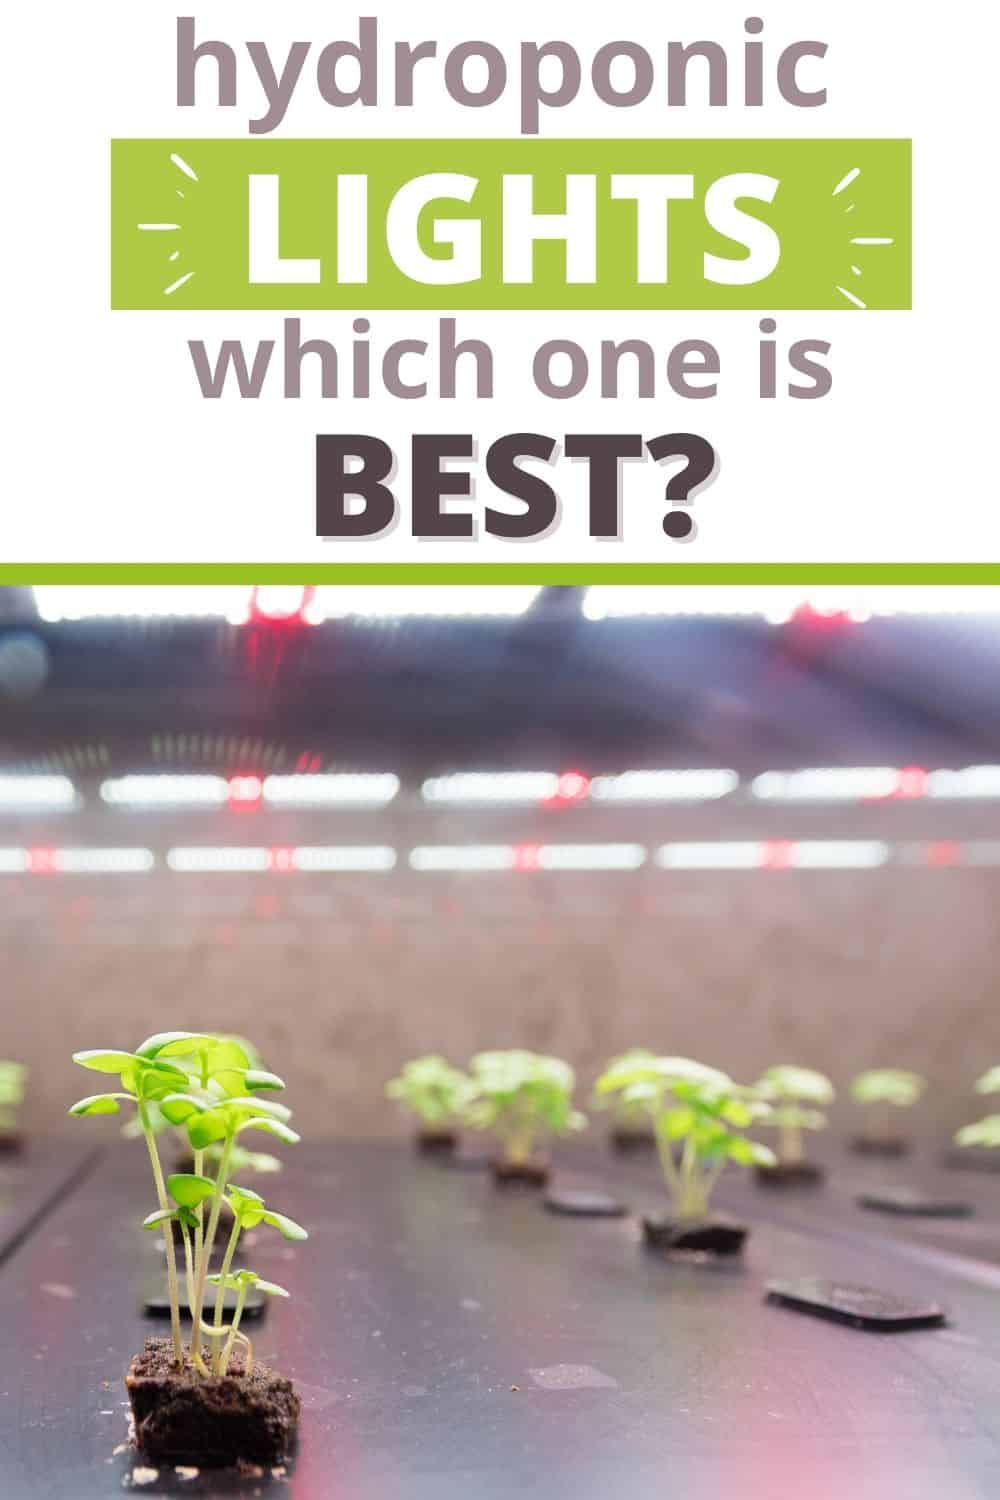 Which hydroponic lights are best?